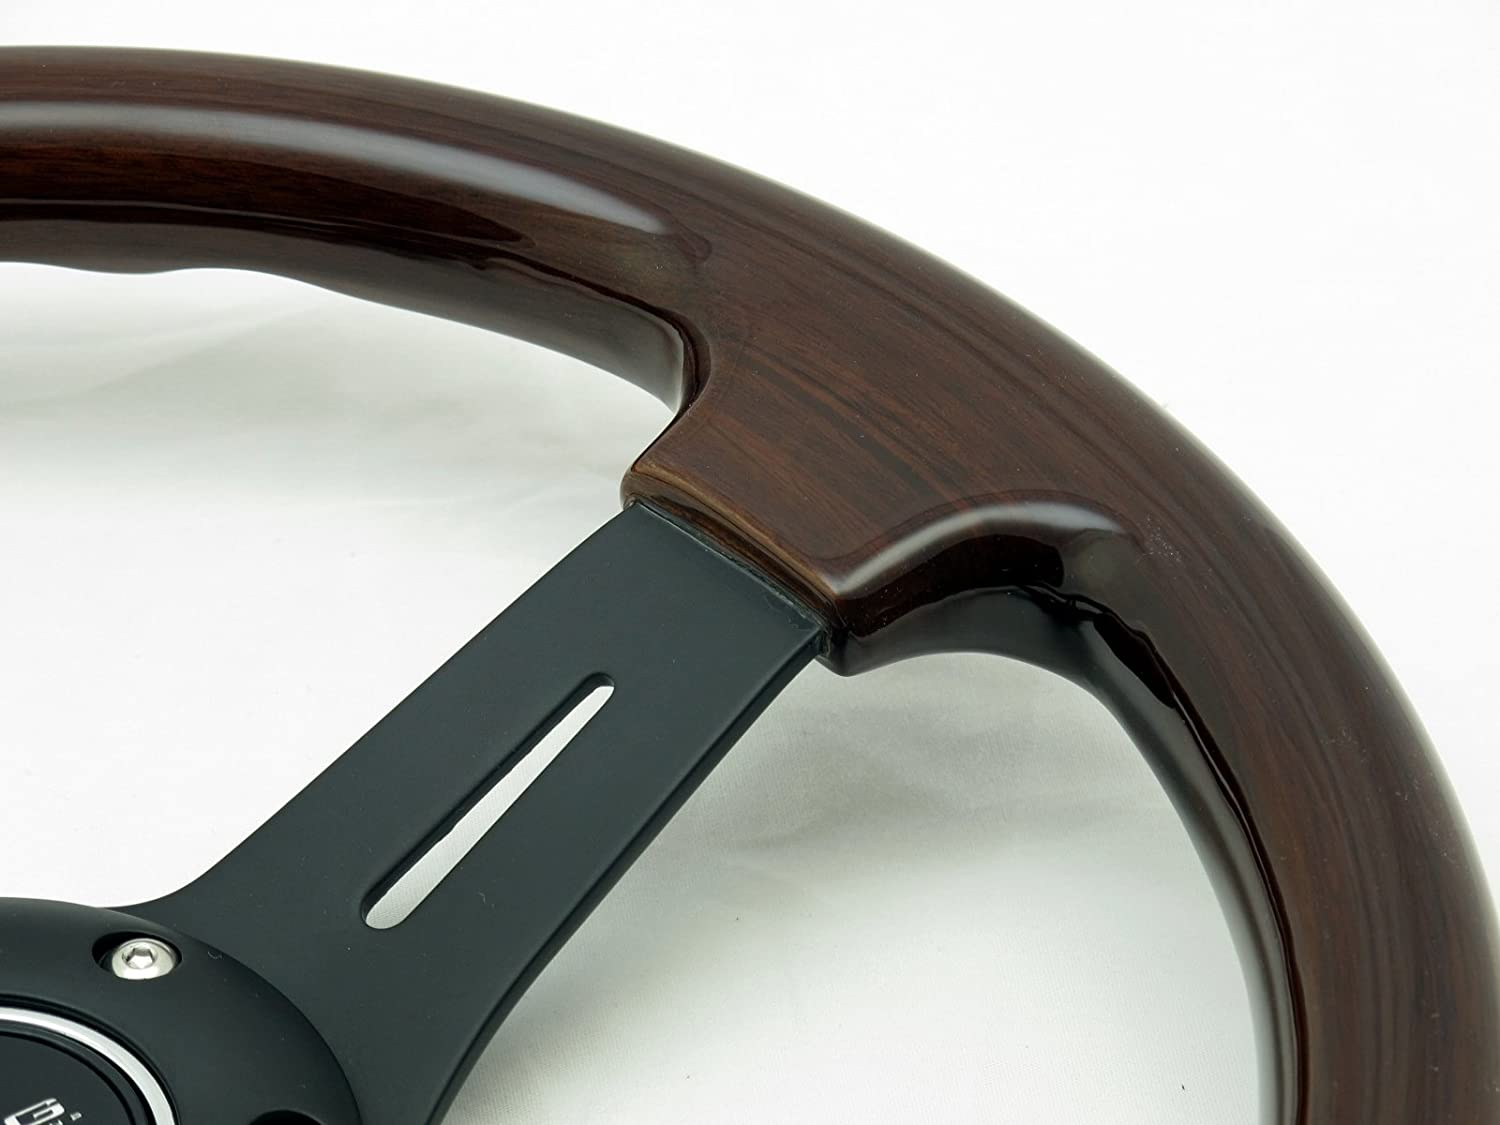 NRG Steering Wheel Classic Wood Grain with Black Spokes 330mm Part # ST-015-1BK